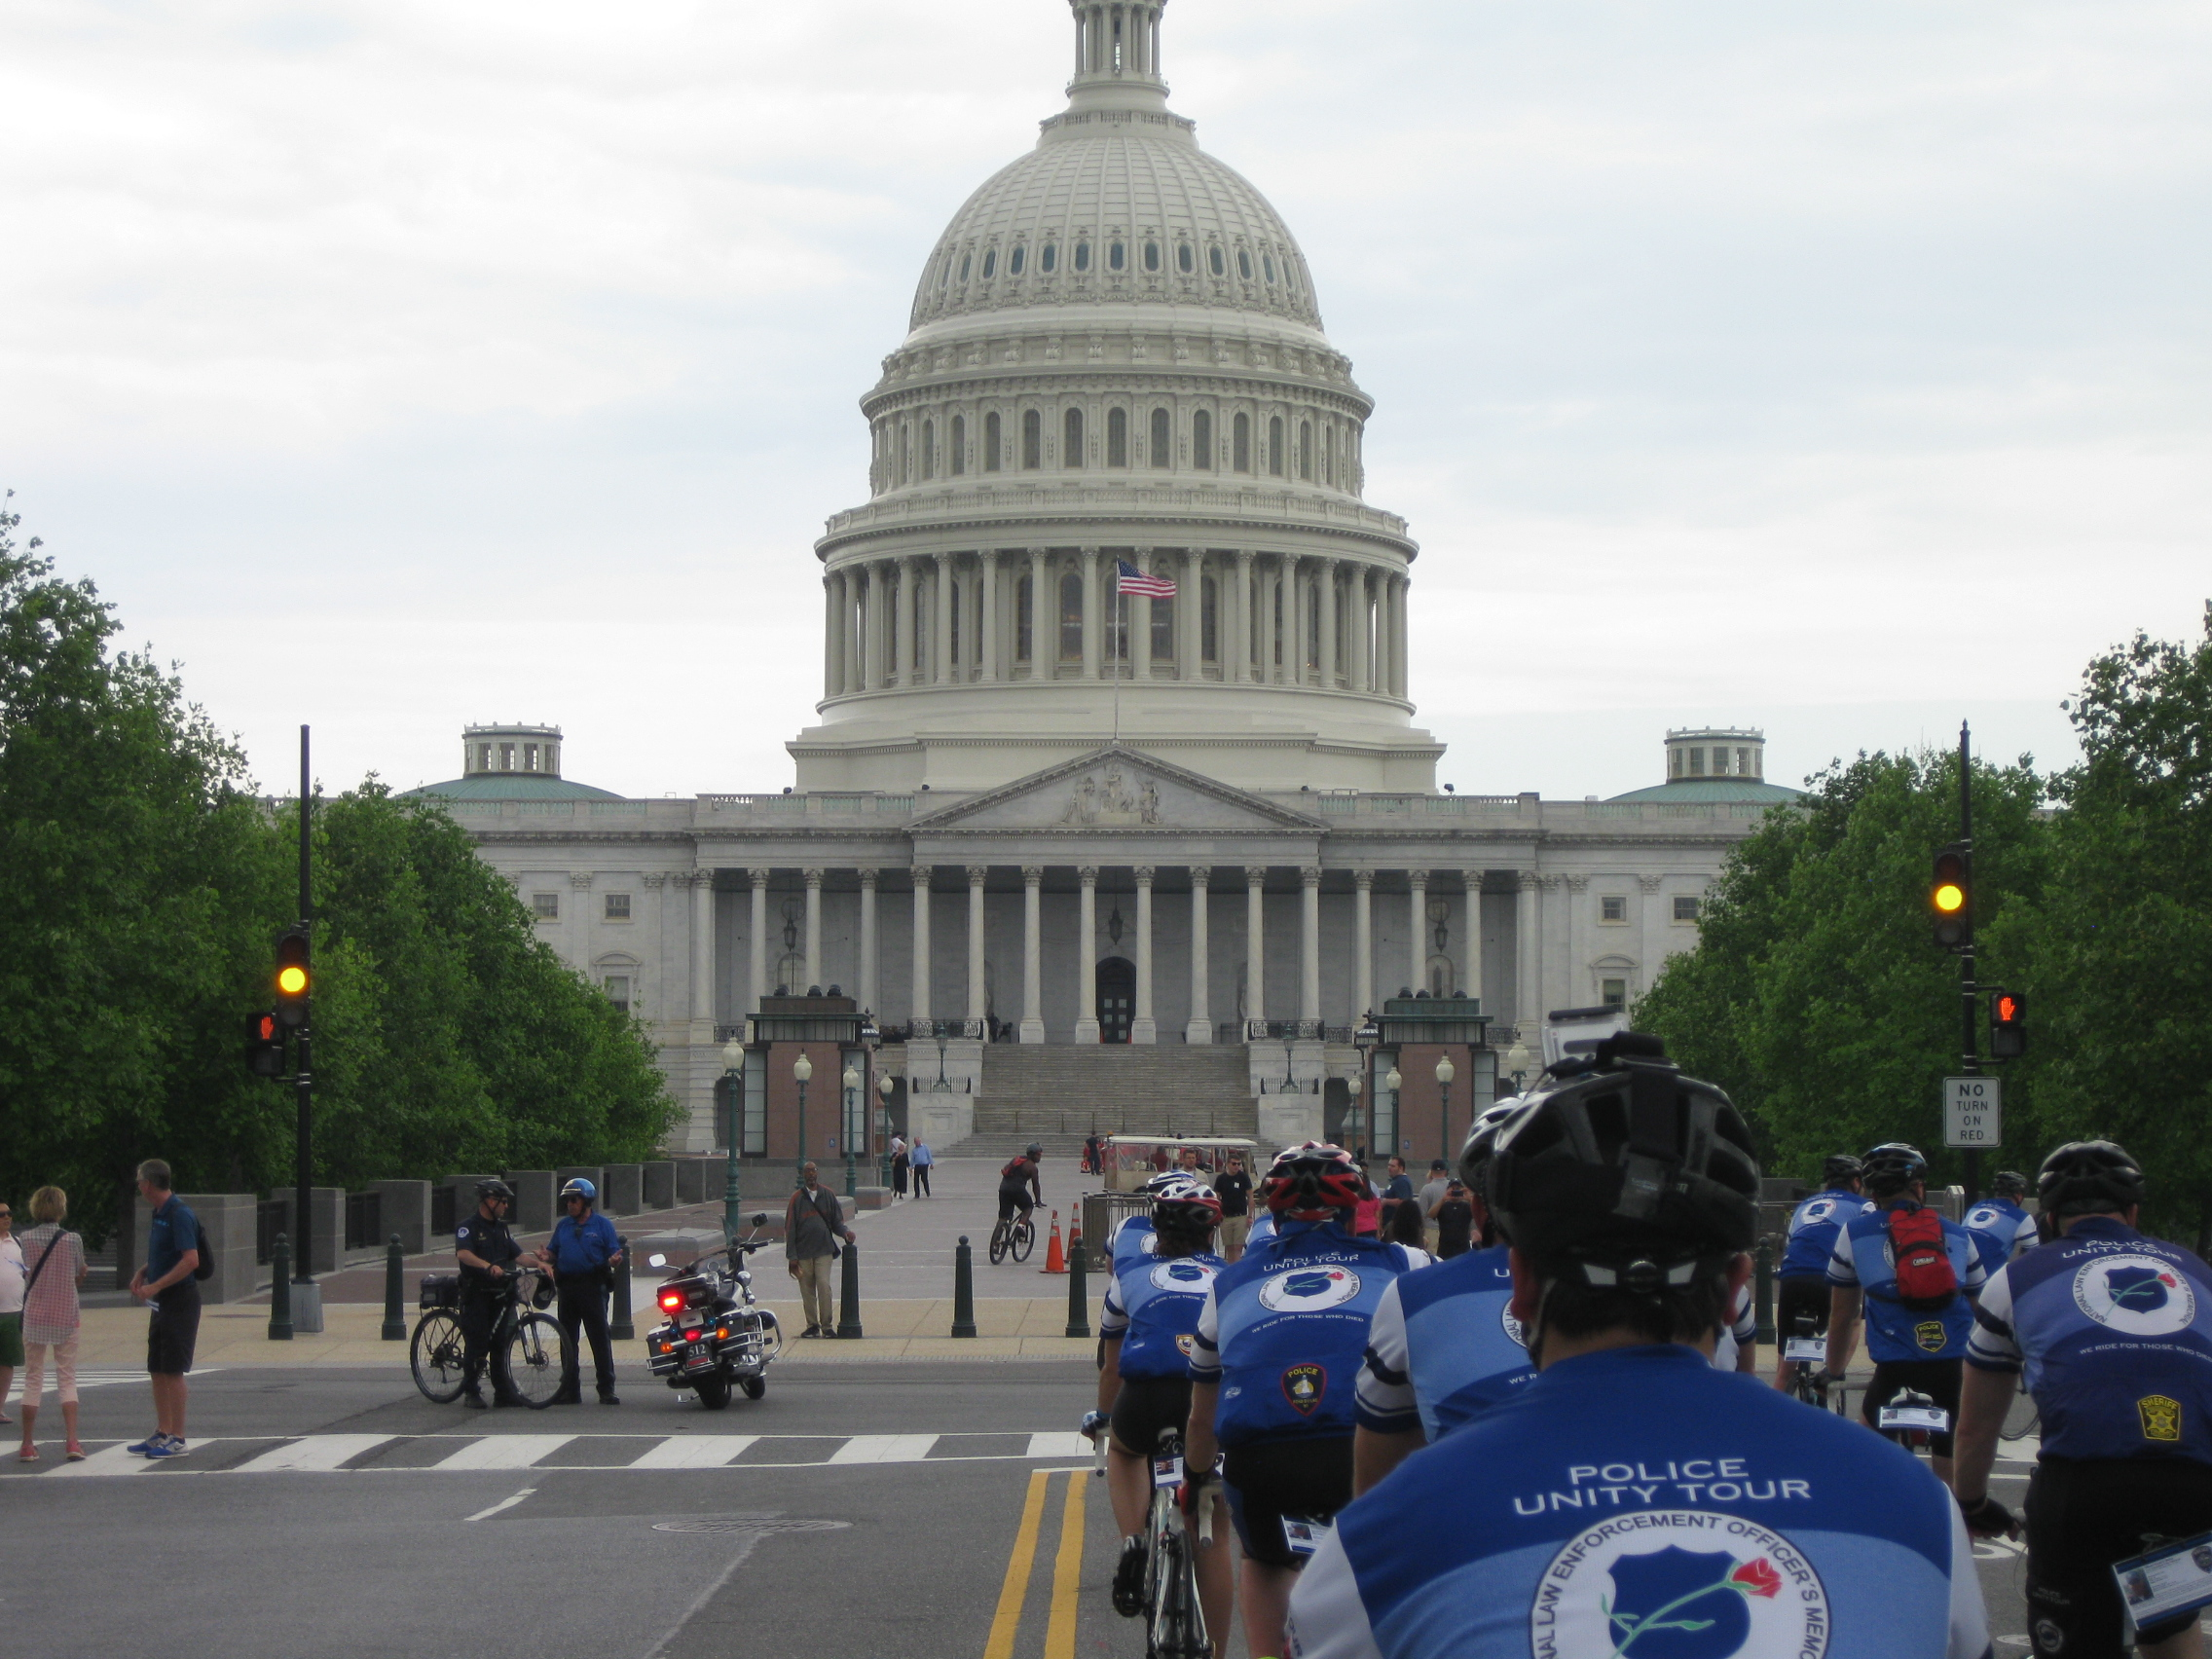 Riders approach the U.S. Capitol on their way to the memorial.